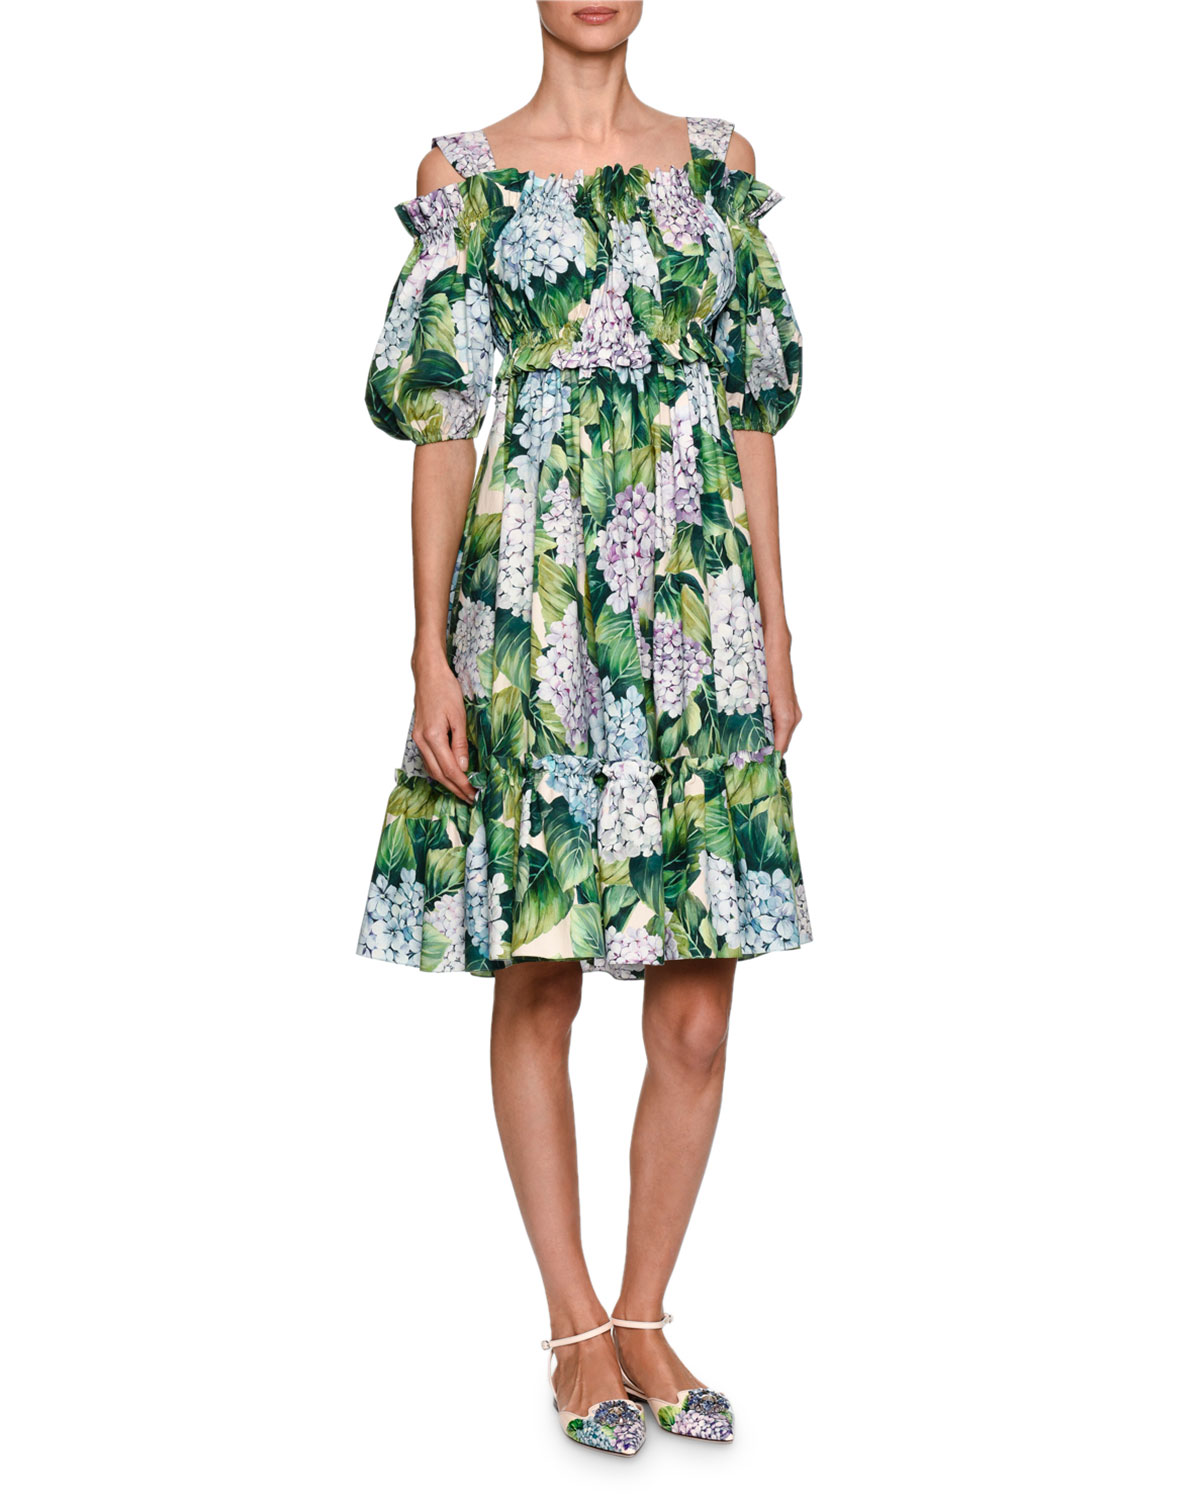 083c54576715 Dolce   Gabbana Hydrangea Printed Off-the-Shoulder Dress